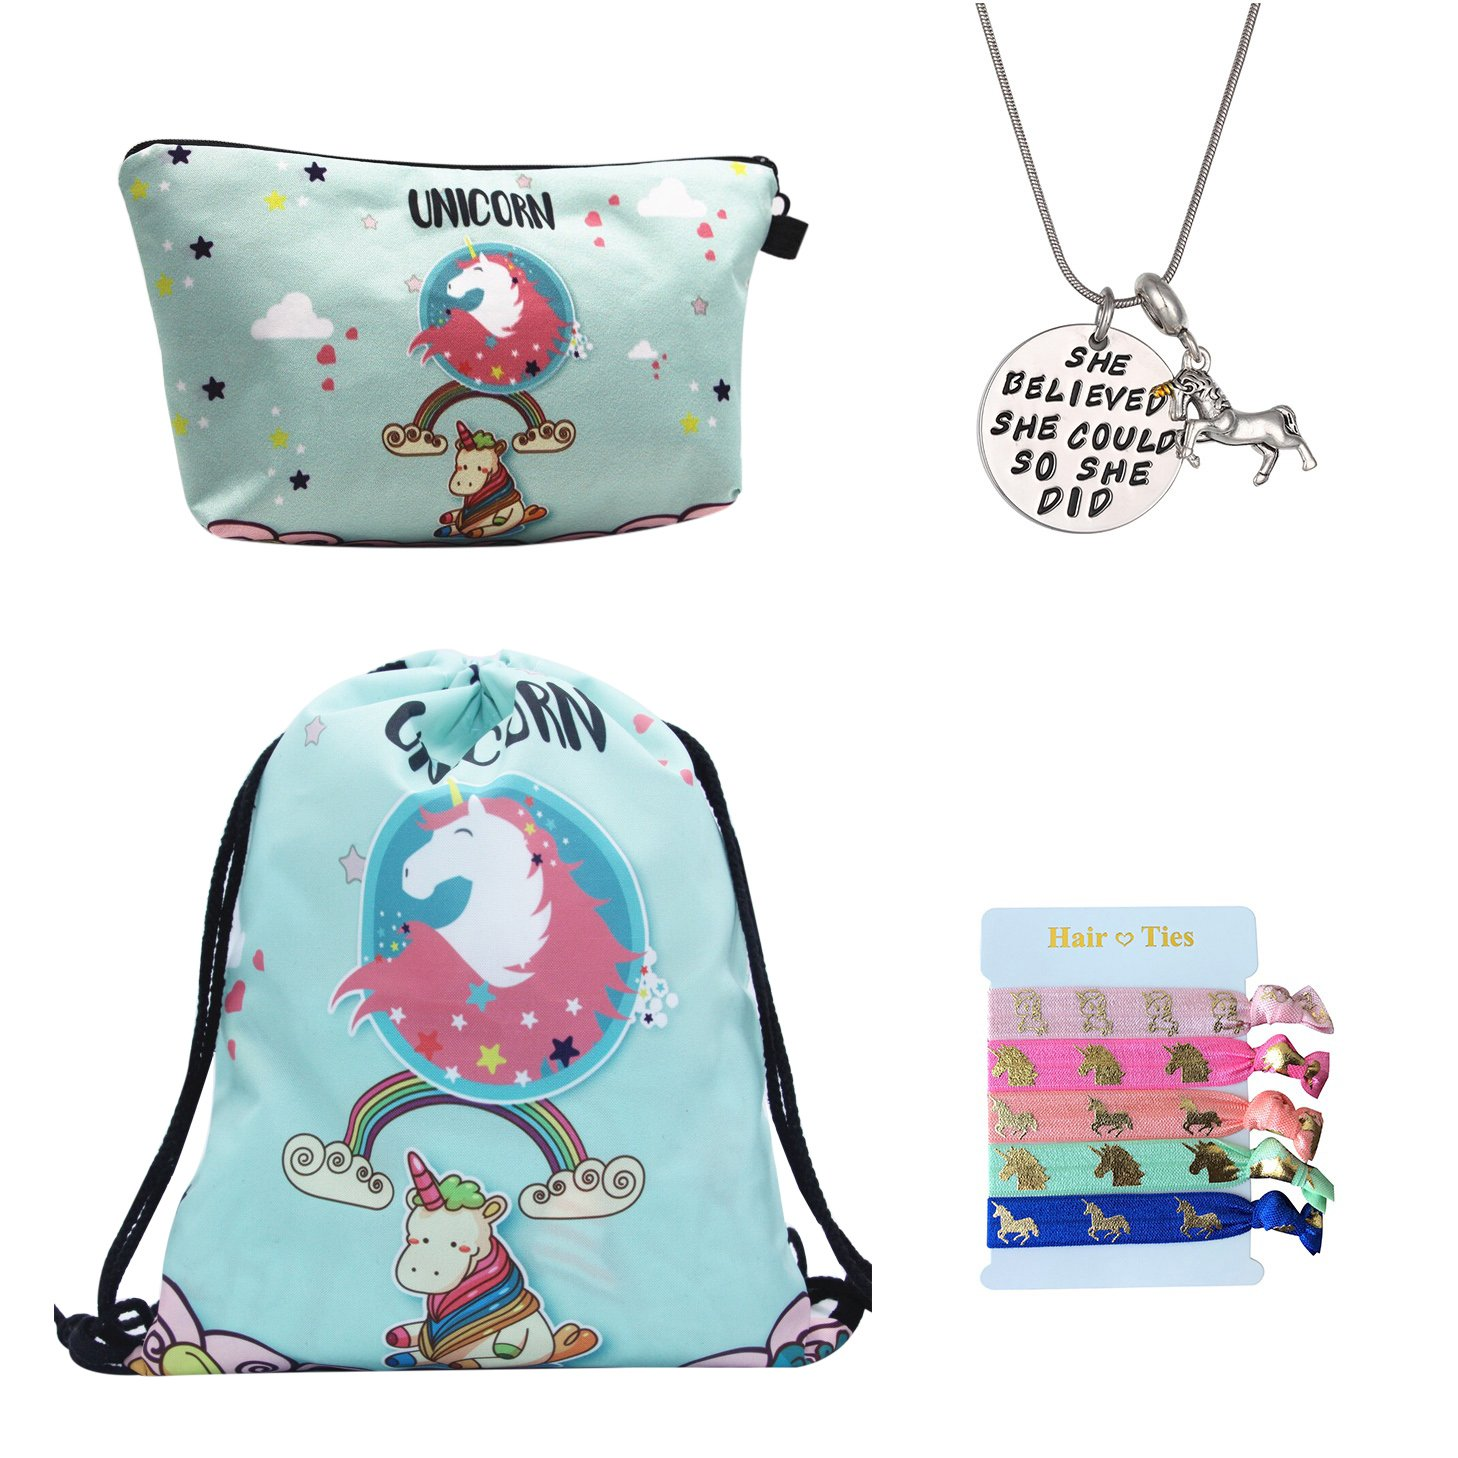 Unicorn Gifts for Girls 4 Pack - Unicorn Drawstring Backpack/Makeup Bag/Inspirational Necklace/Hair Ties (Unicorn with Rainbow)